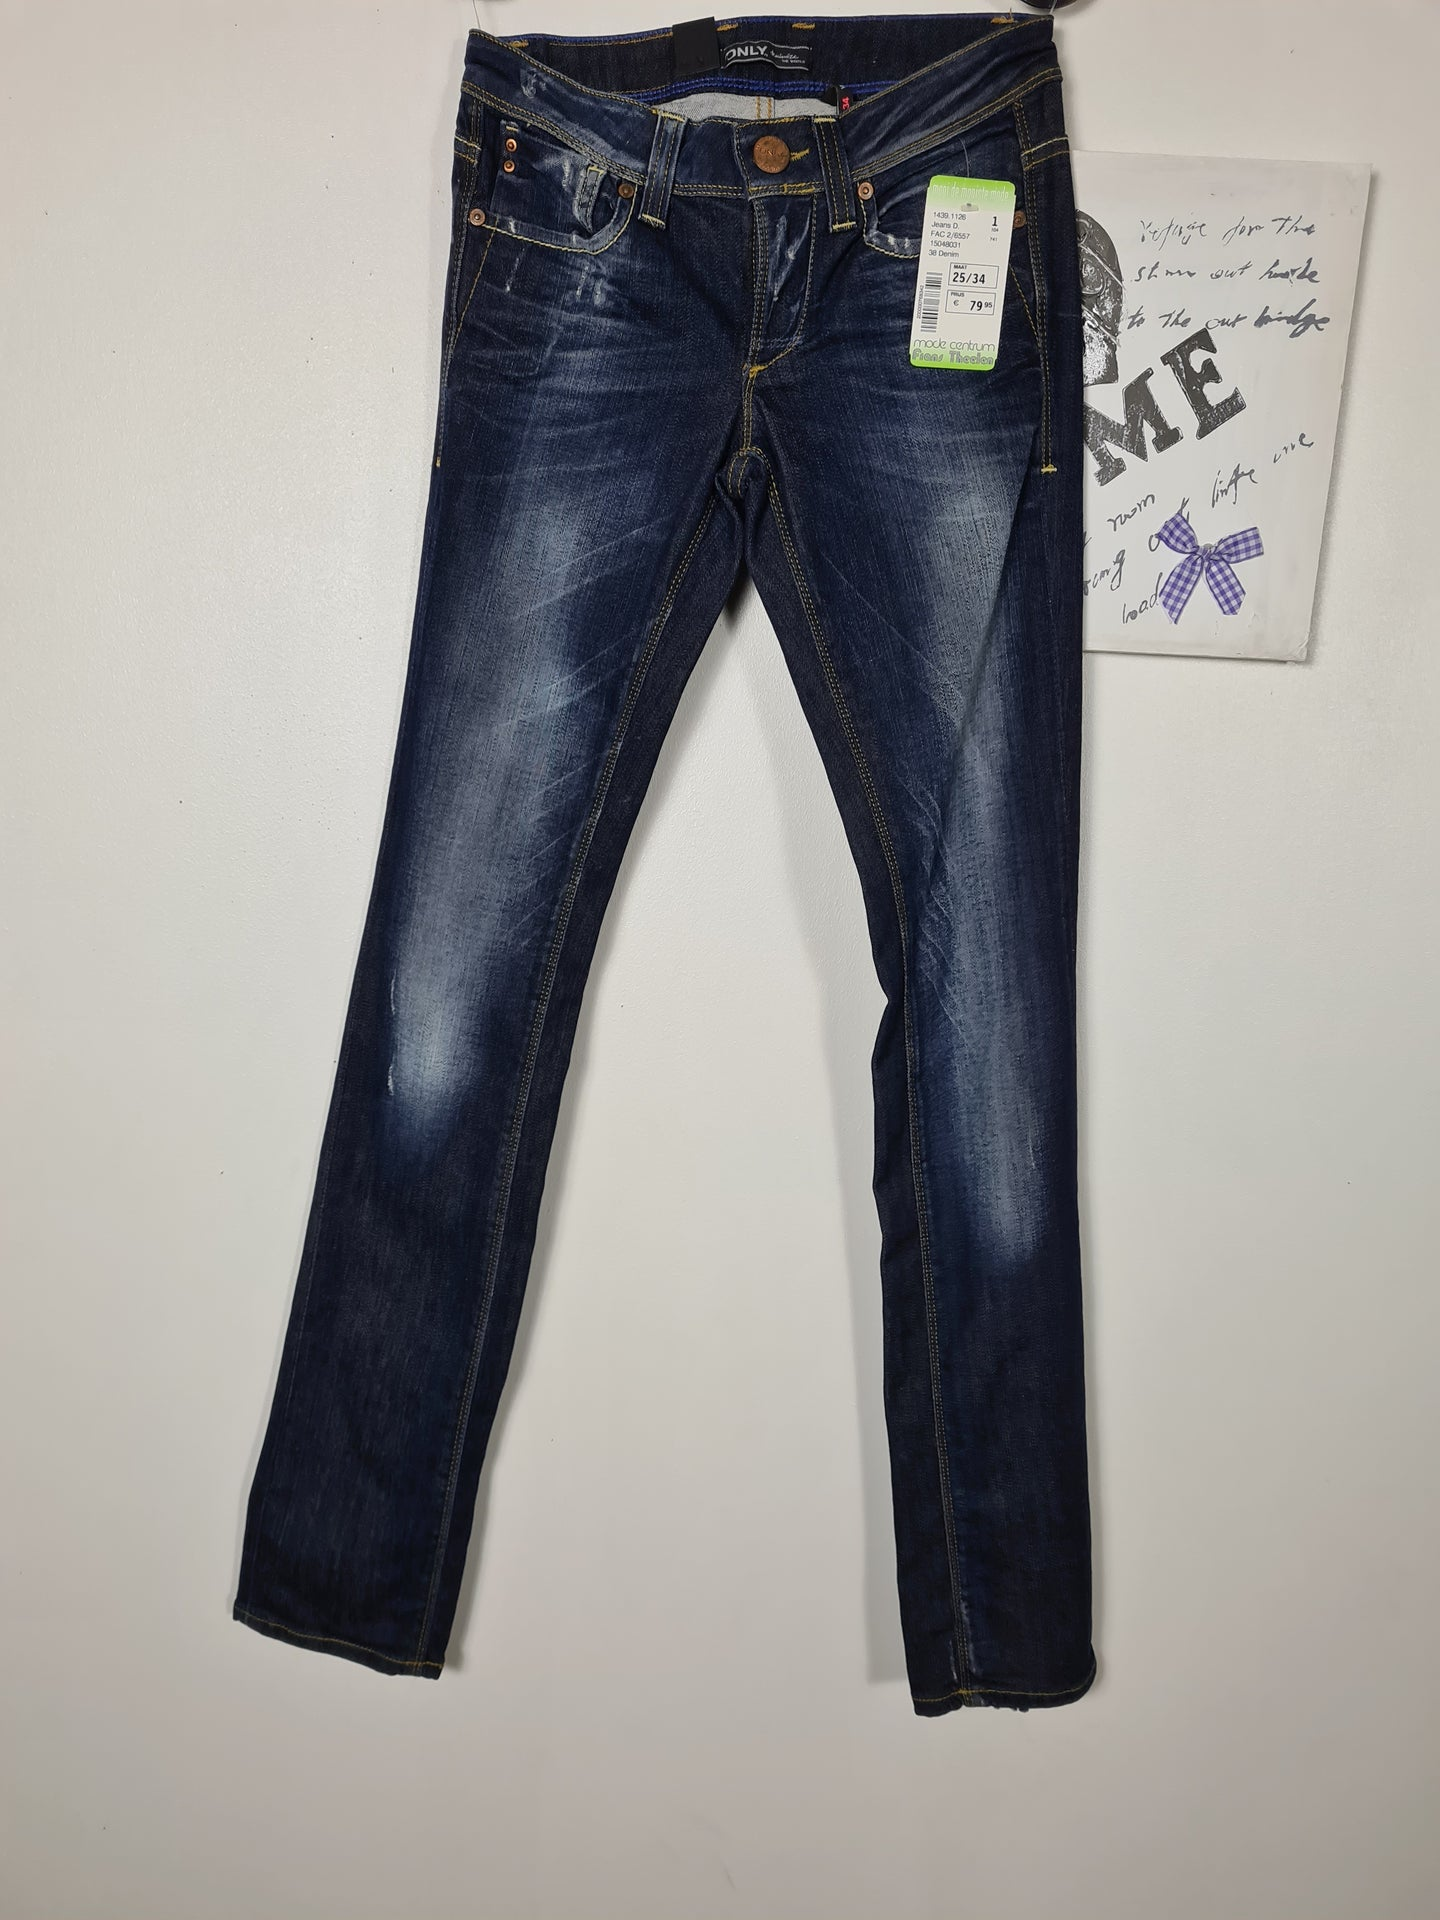 Jeans Only - Taille 25/34